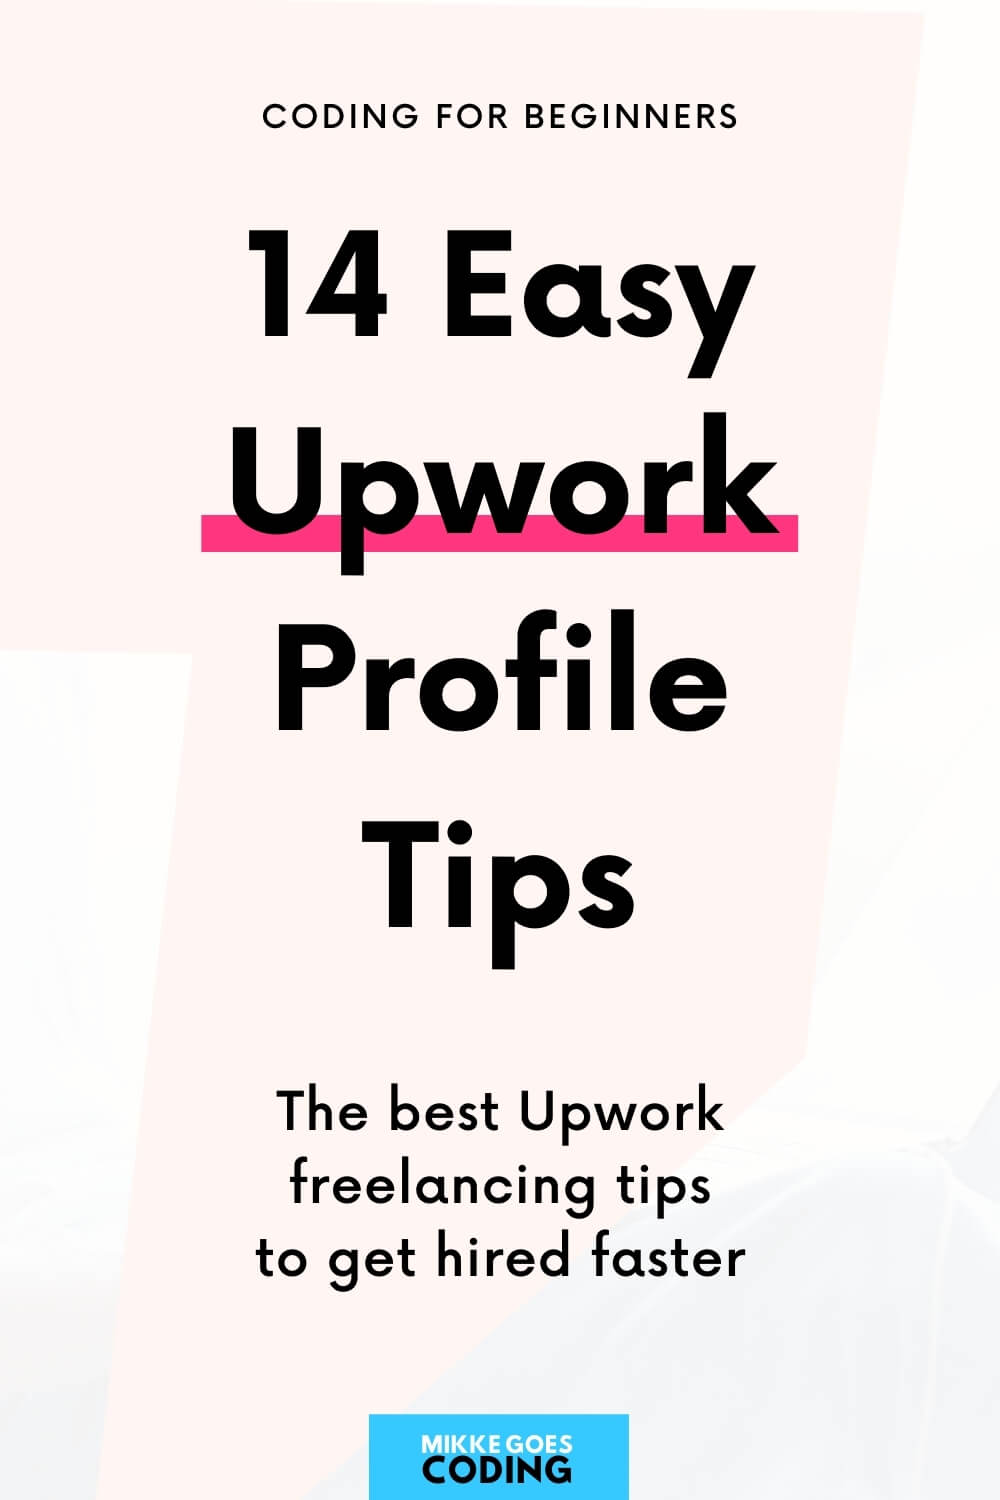 Upwork freelancing tips - How to set up your Upwork profile with Upwork profile examples for beginner freelancers